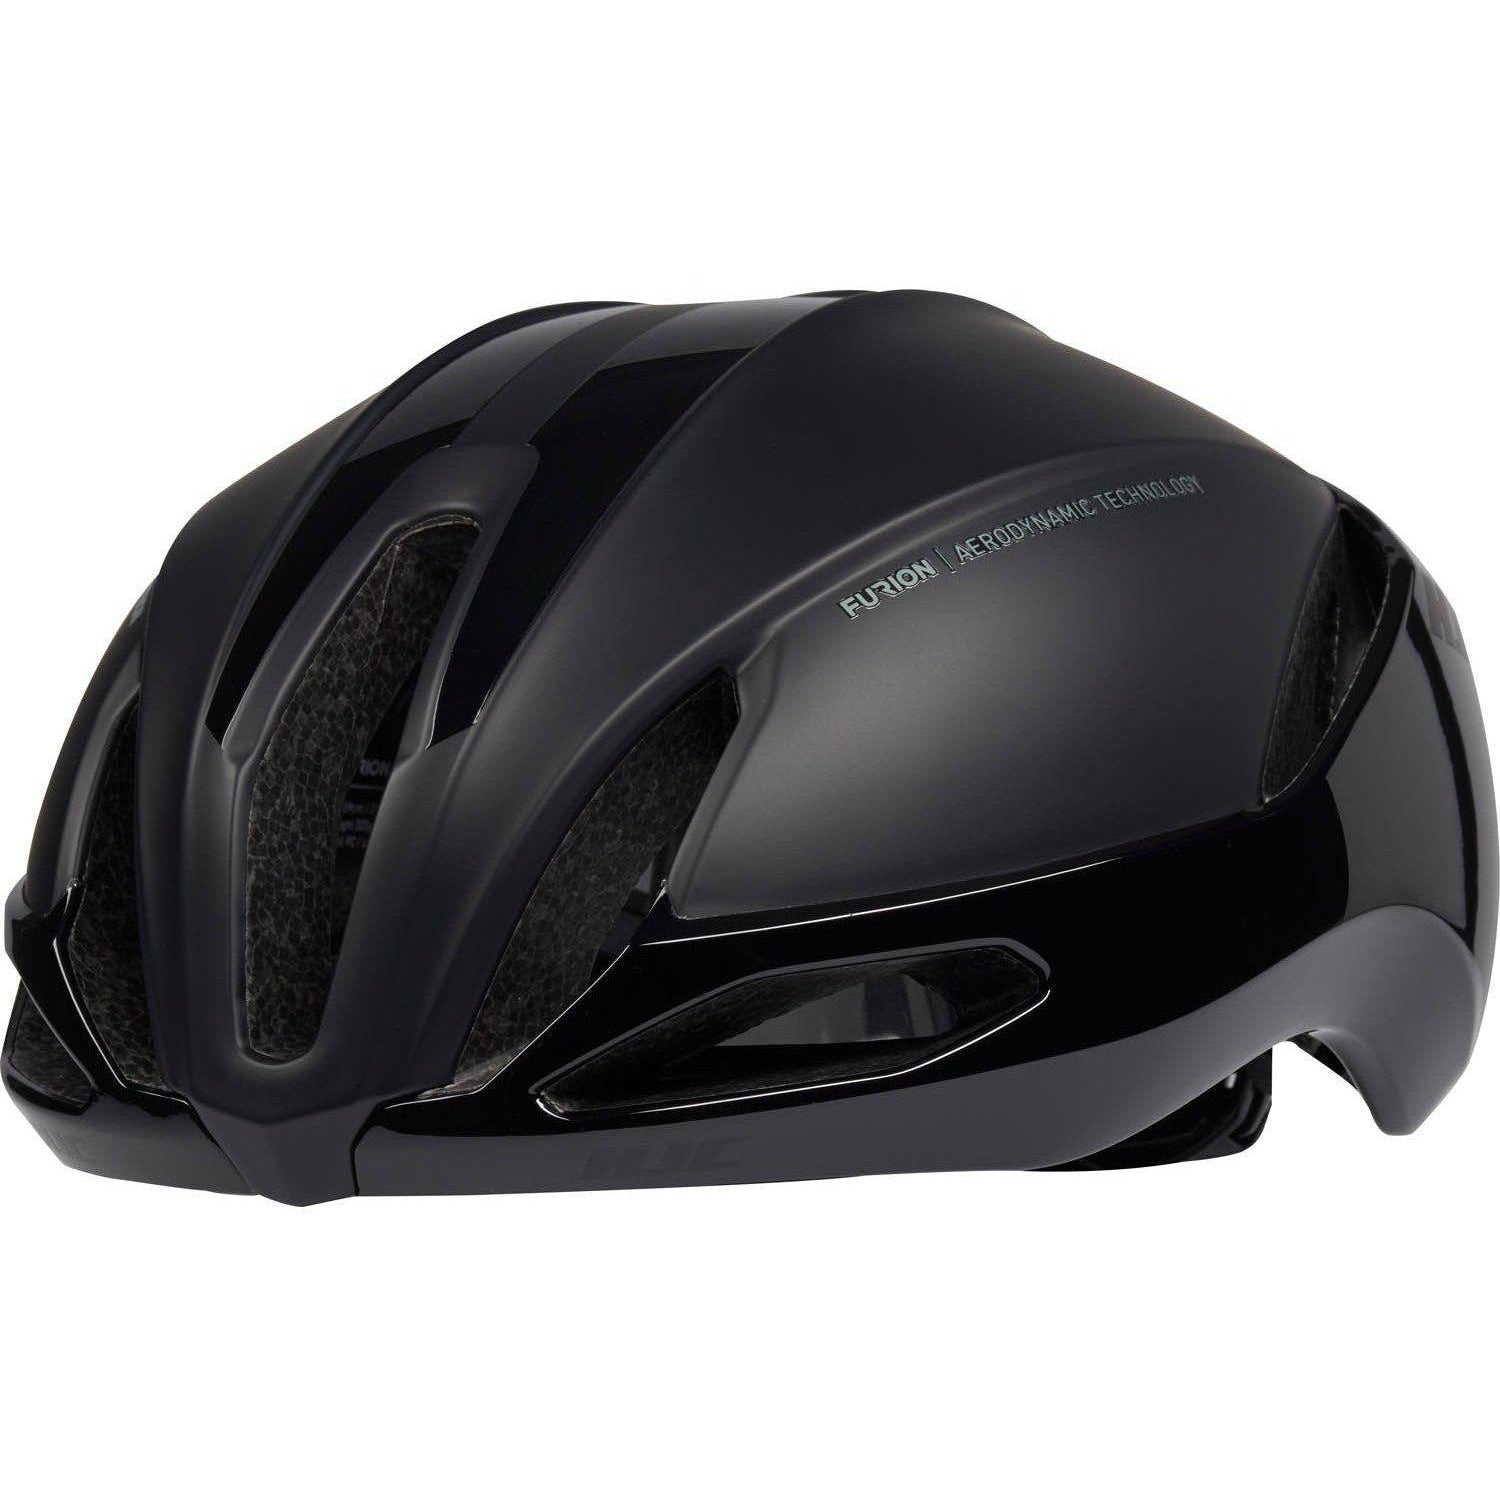 HJC-HJC Furion 2.0 Road Cycling Helmet-Black-S-HJC81213101-saddleback-elite-performance-cycling